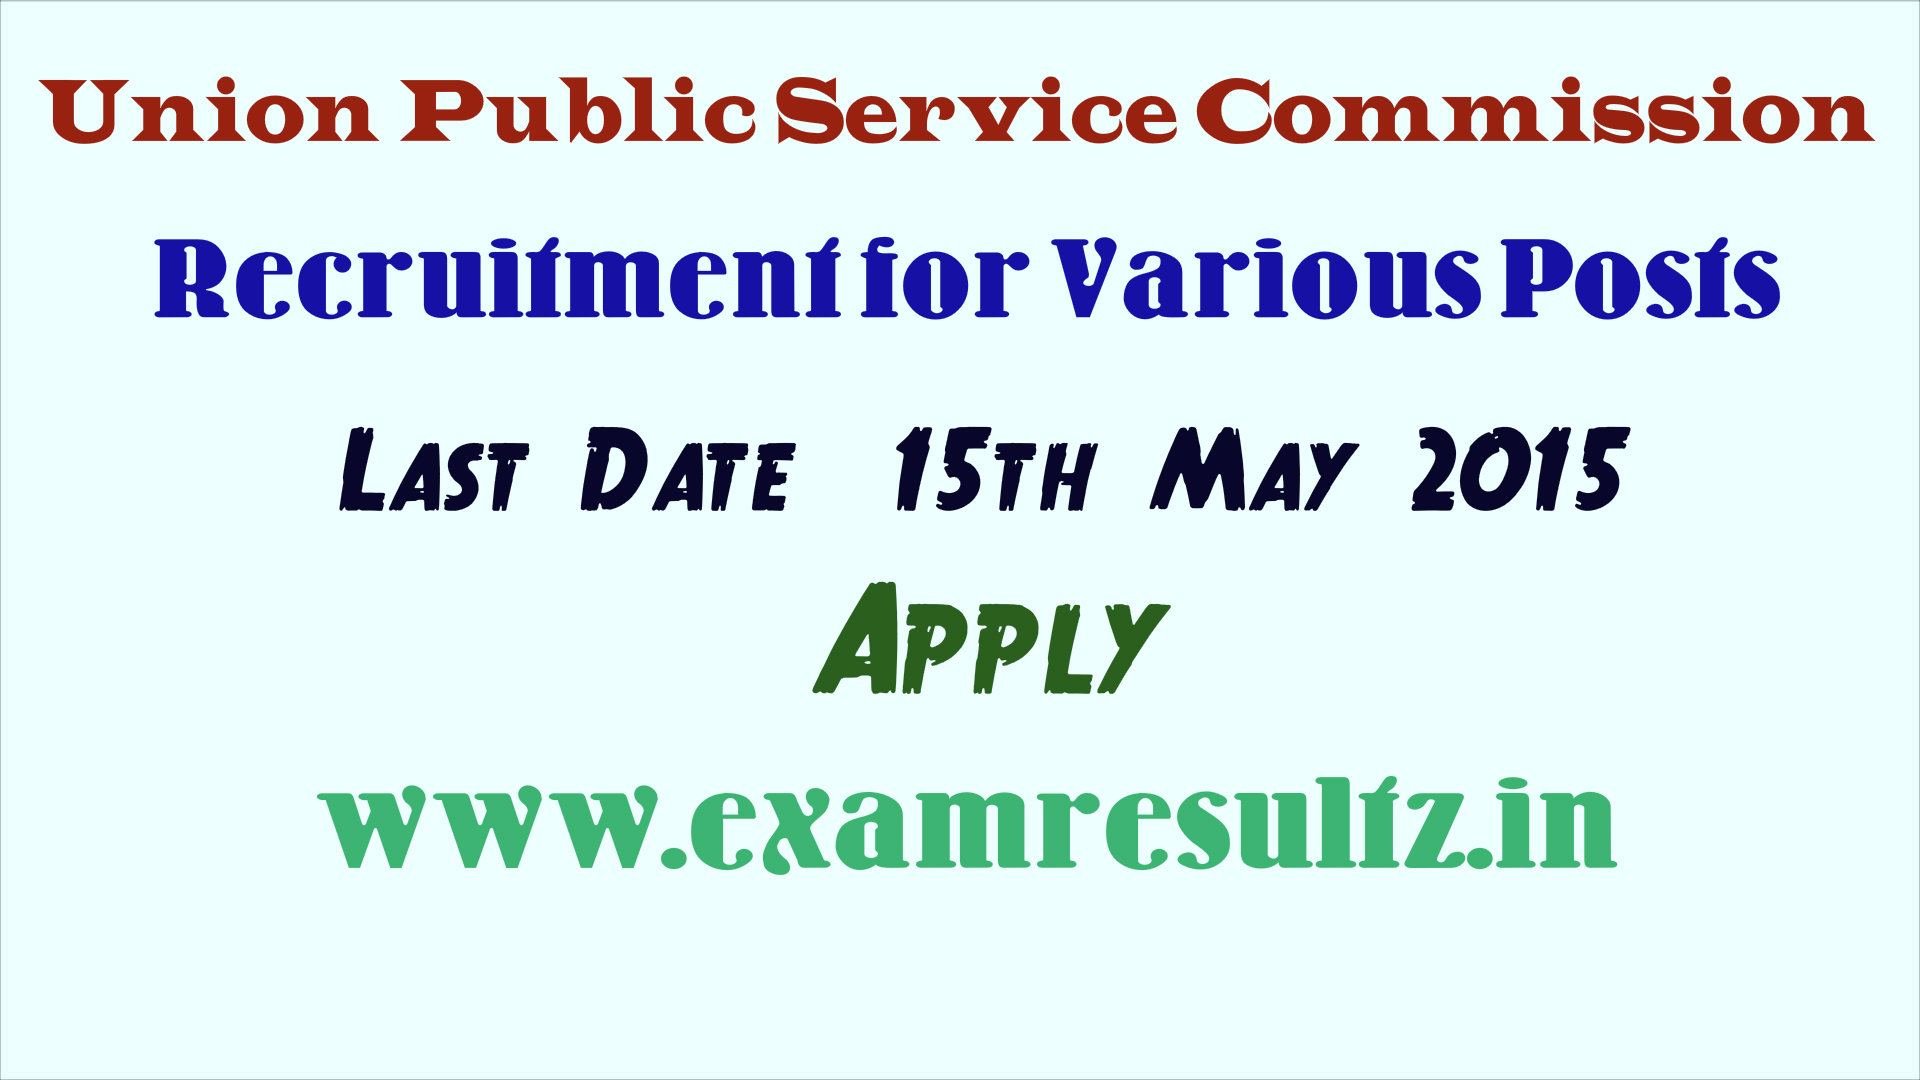 UPSC recruitment online application form www.upsconline.nic.in